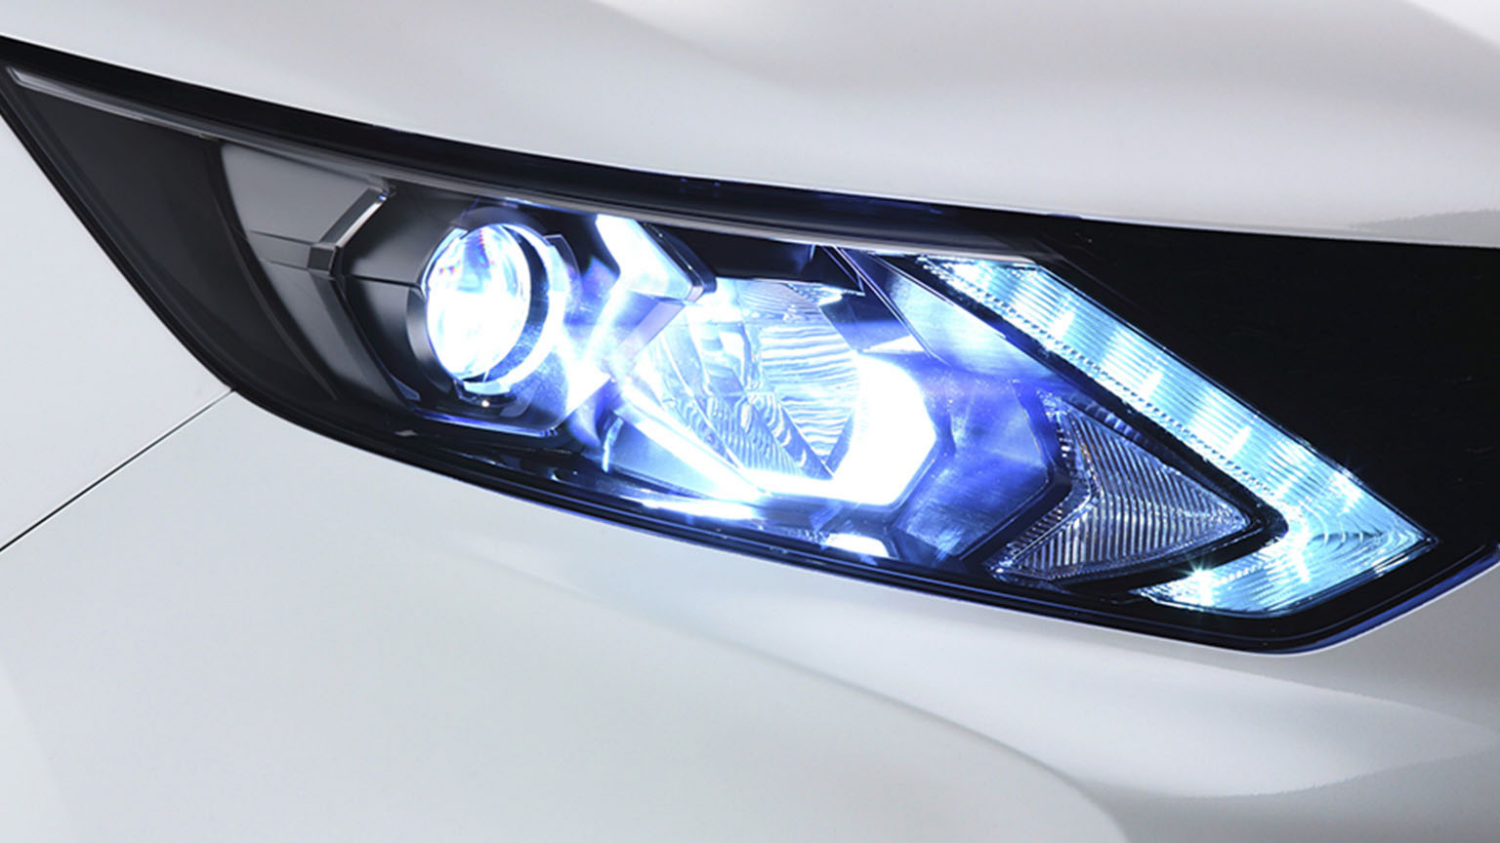 Small SUV design - LED Daytime Running Lights | Nissan Qashqai